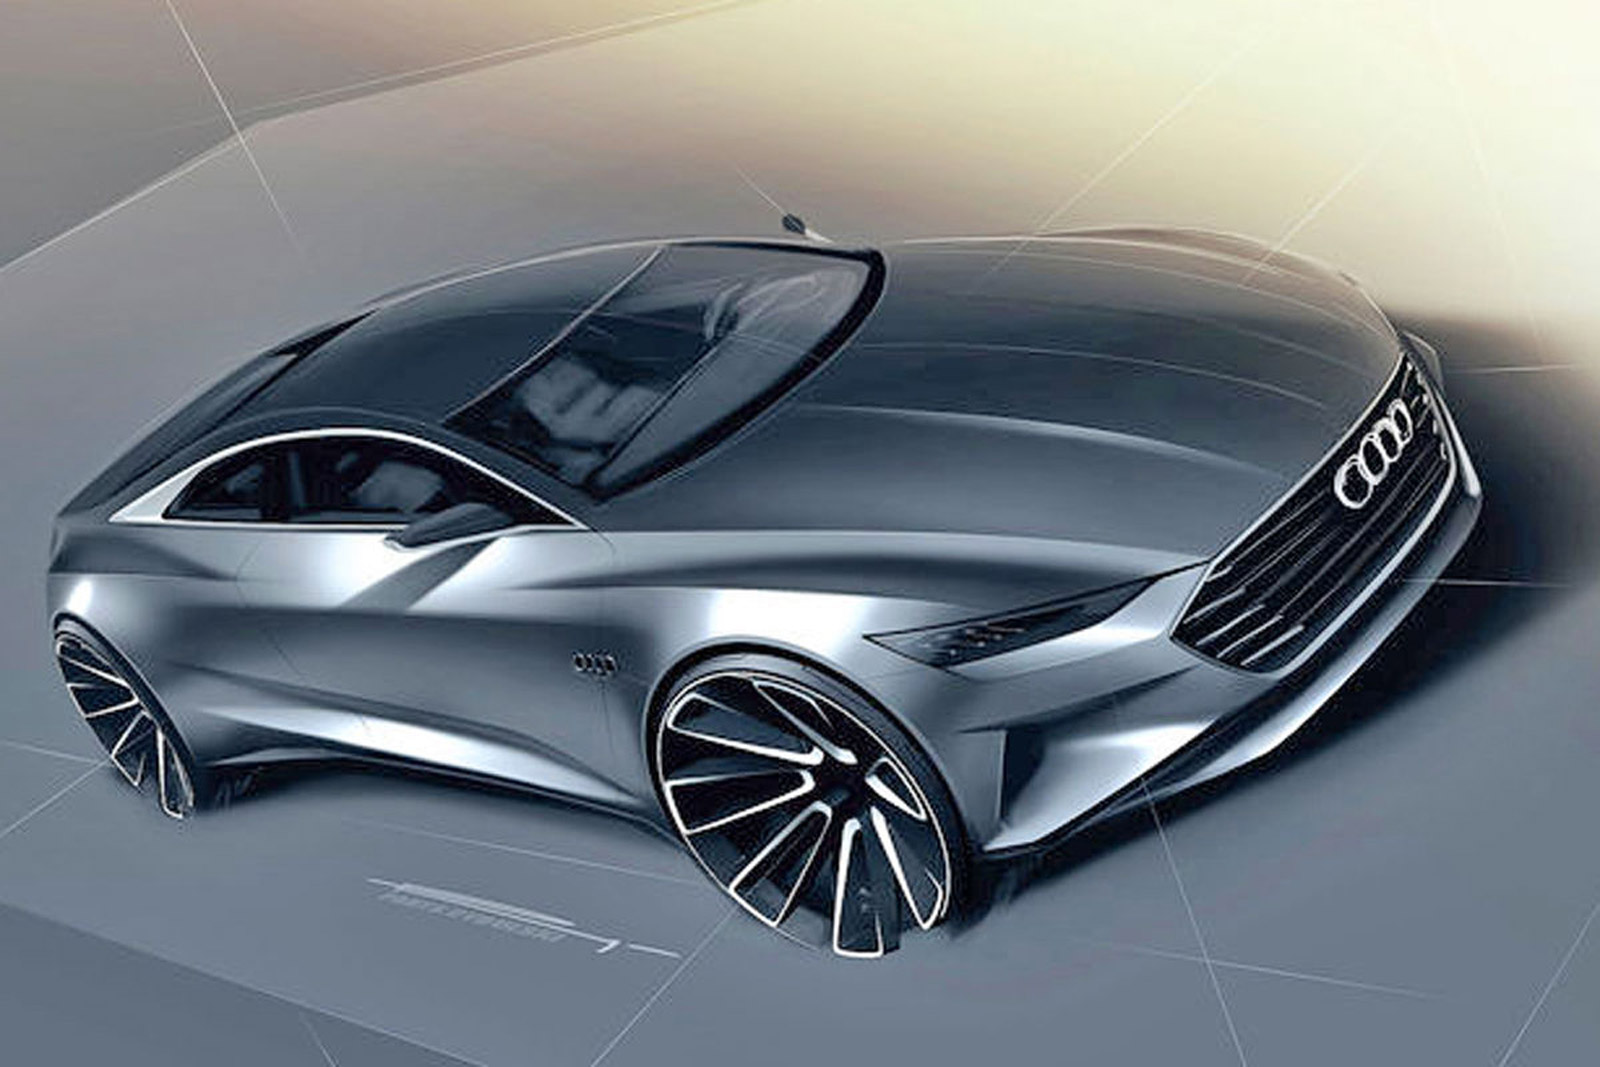 teaser-sketch-for-audi-prologue-concept-image-via-auto-bild_100489891_h.jpg